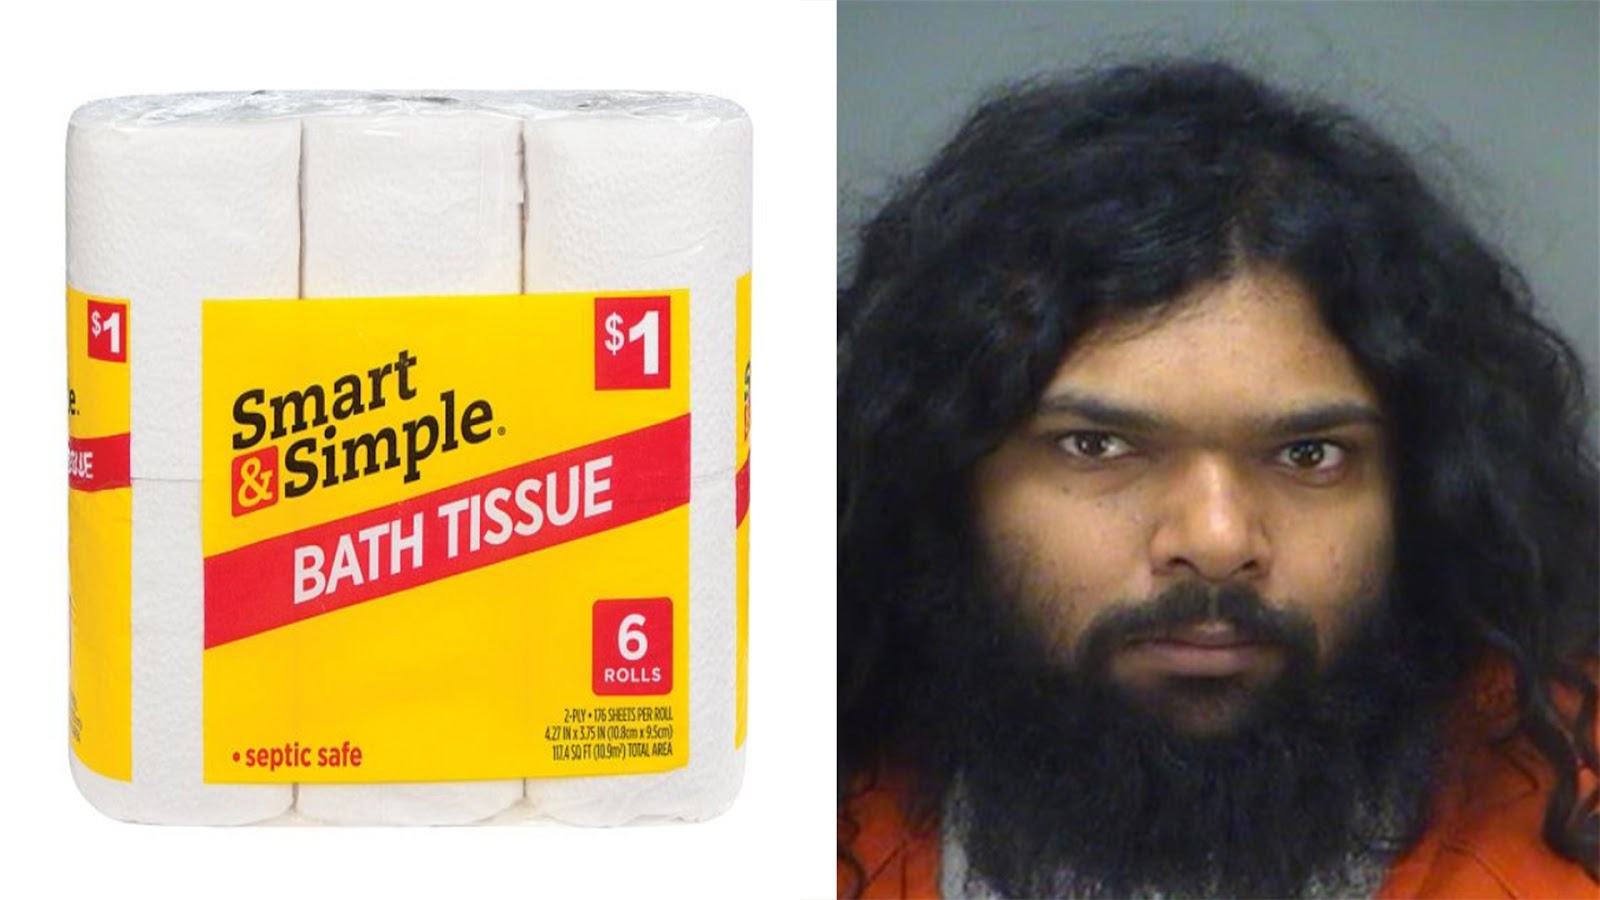 Safraz Shakoor Bio, Wiki, Age, Stole Toilet Paper, Arrested, Cops Say